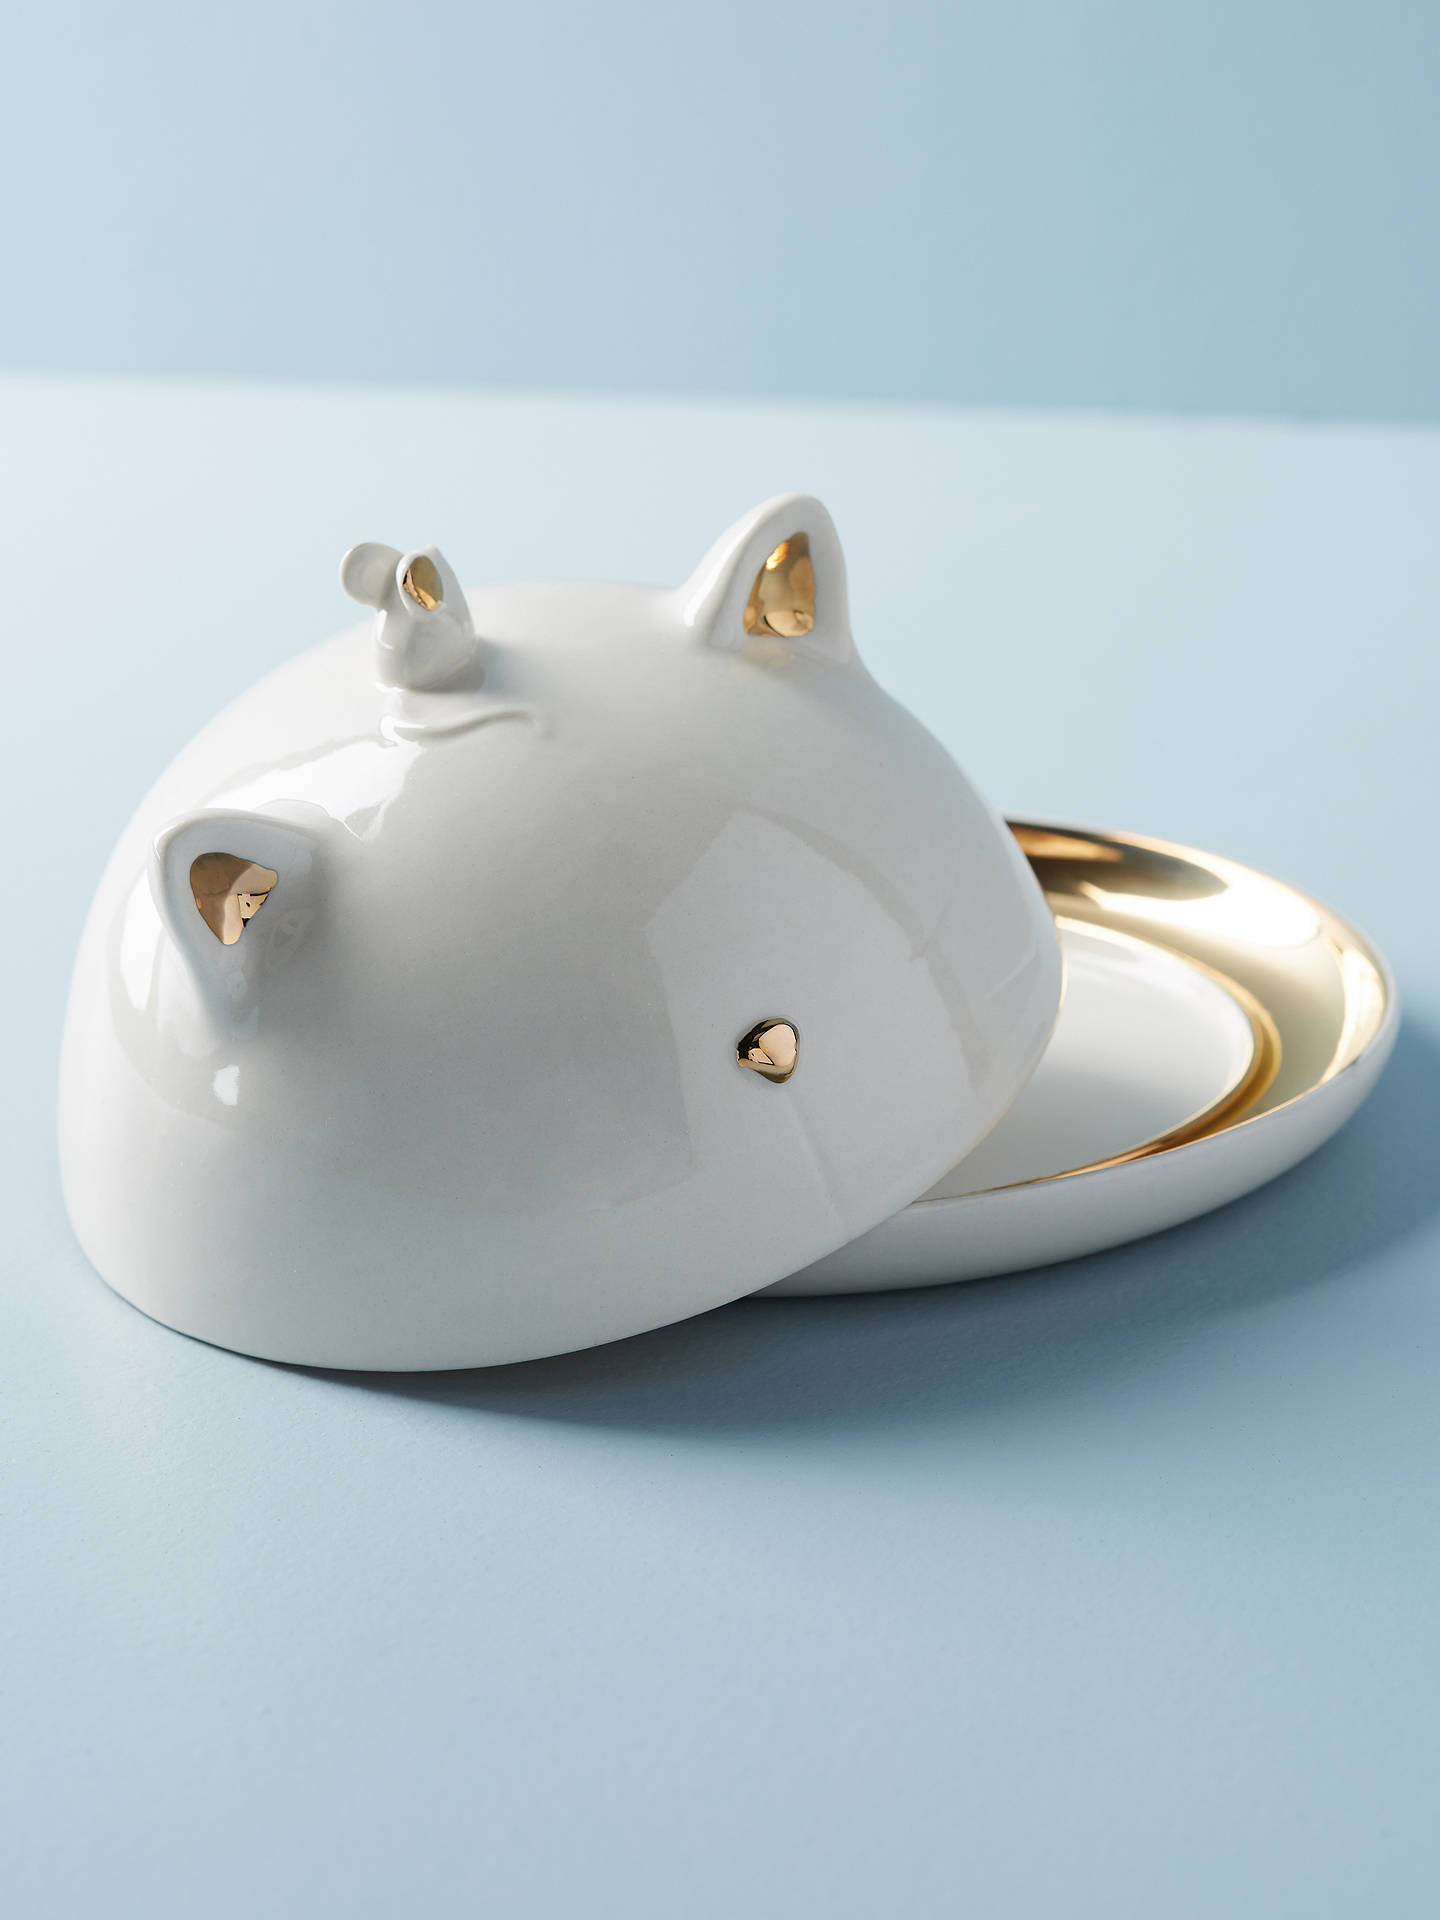 Buy Anthropologie Balou Cat Butter Dish, White Online at johnlewis.com